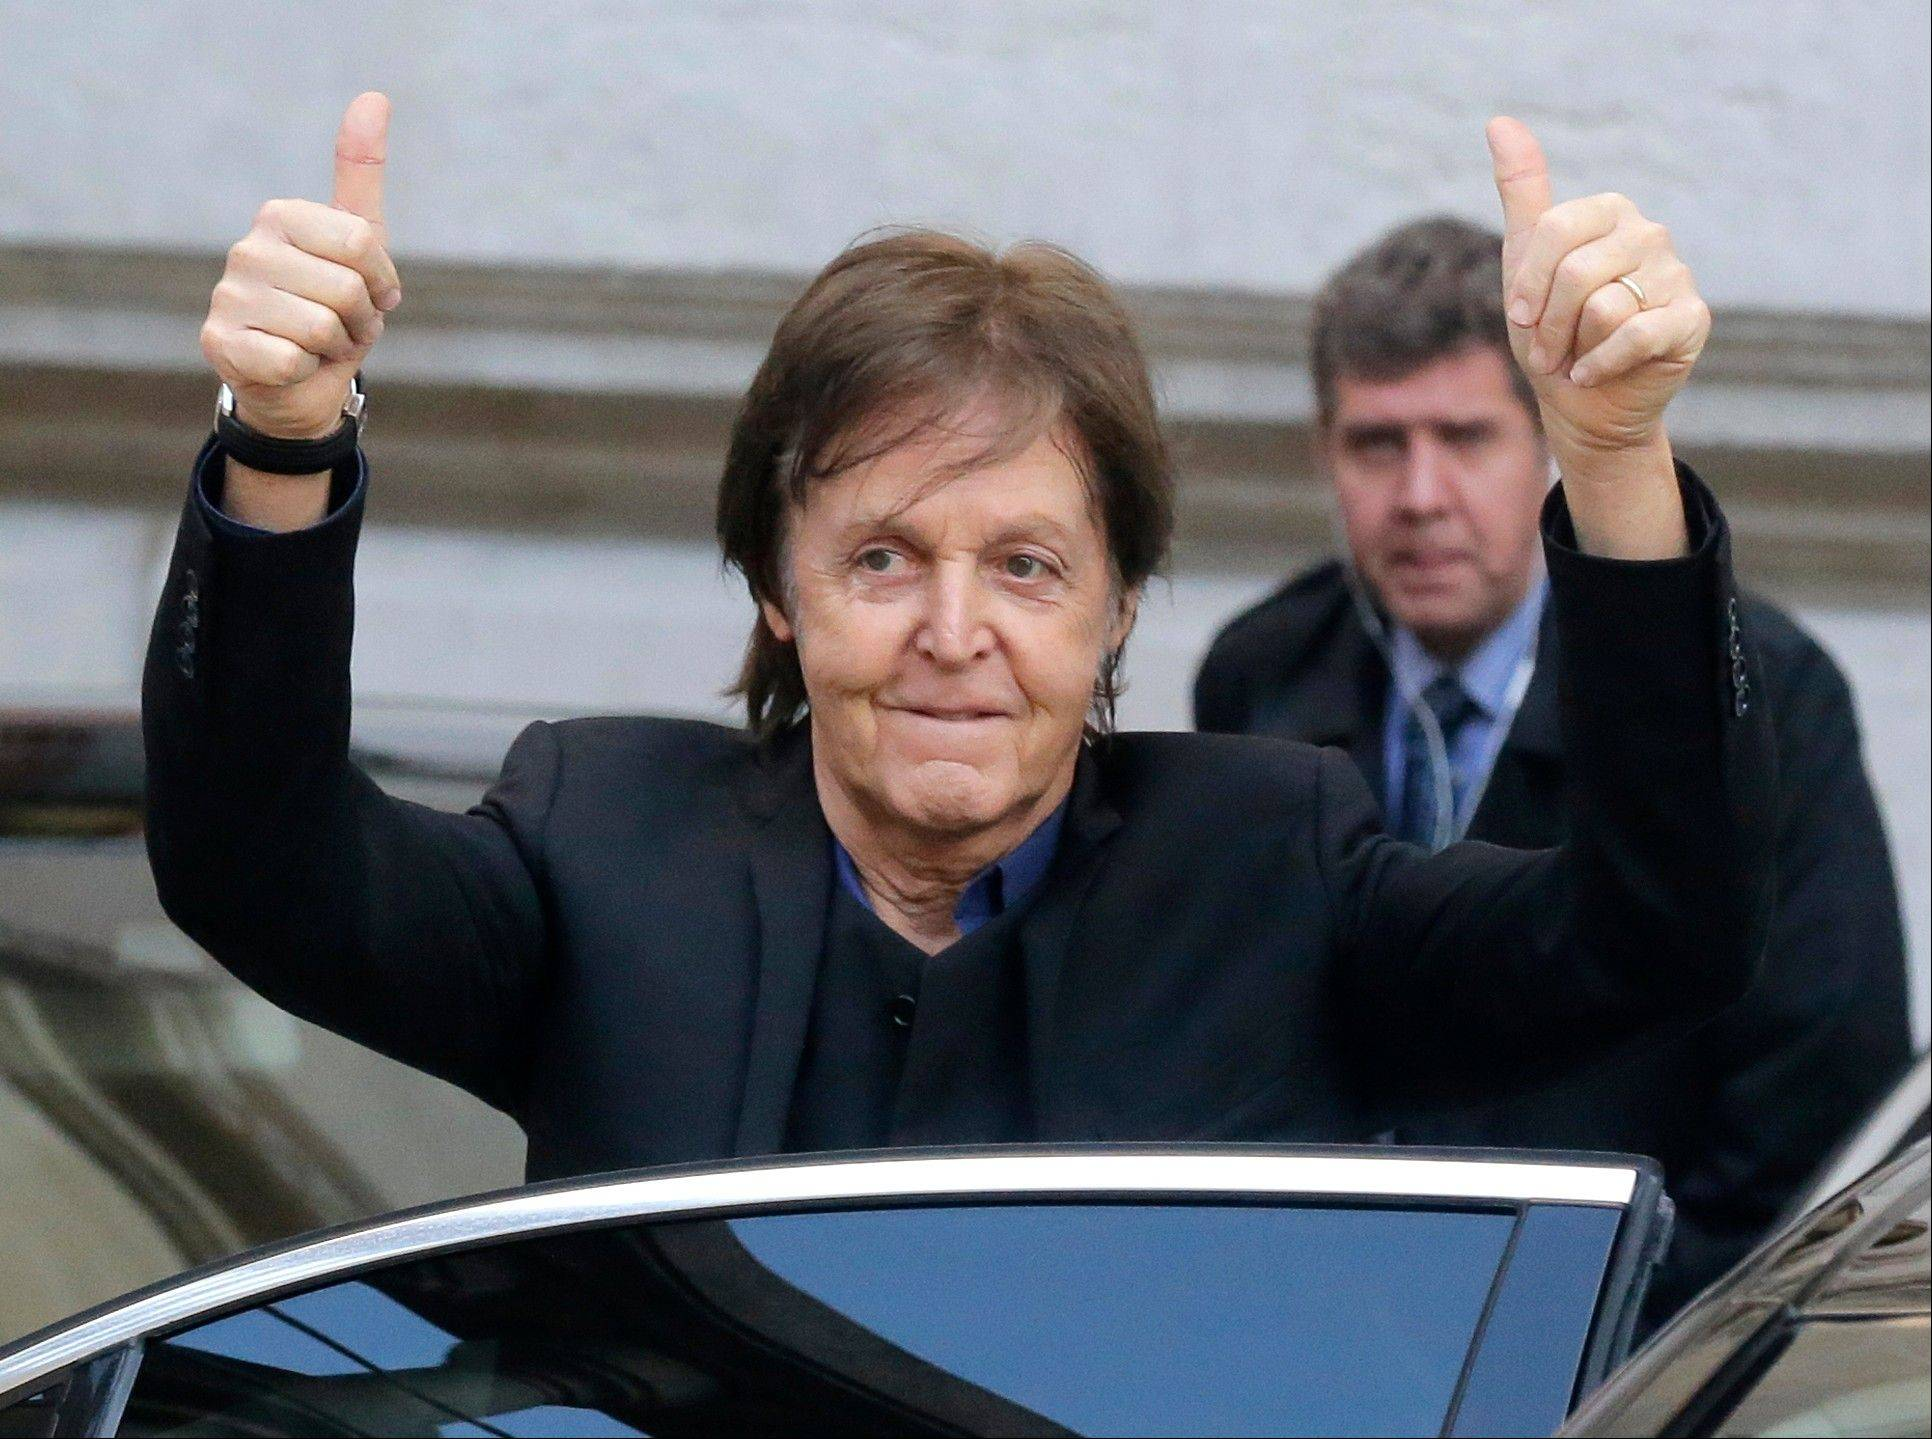 Sir Paul McCartney remains Britain's wealthiest musician, according to the Sunday Times Rich List.